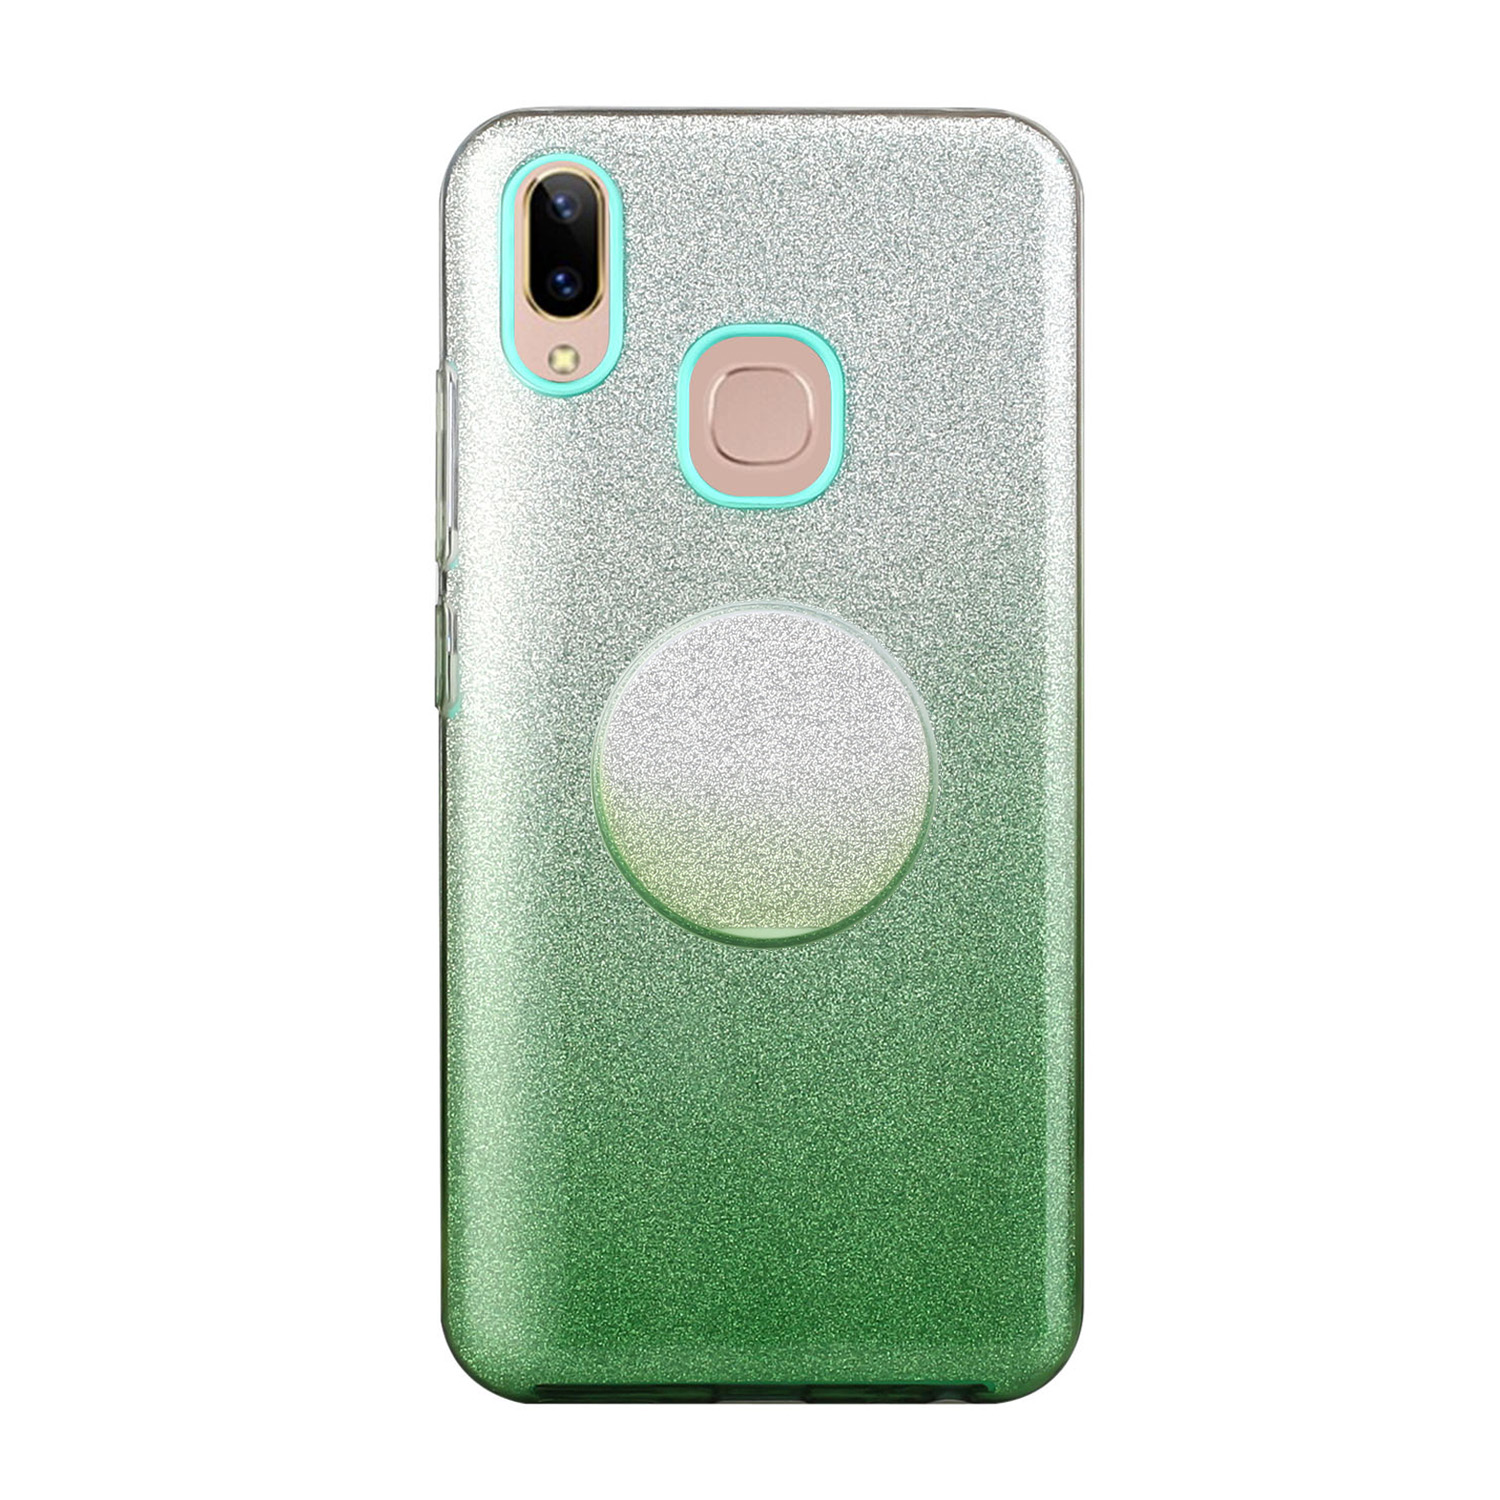 For VIVO Y91/Y93/Y95 with hole/V17/S1 Pro/Y95 Phone Case Gradient Color Glitter Powder Phone Cover with Airbag Bracket green